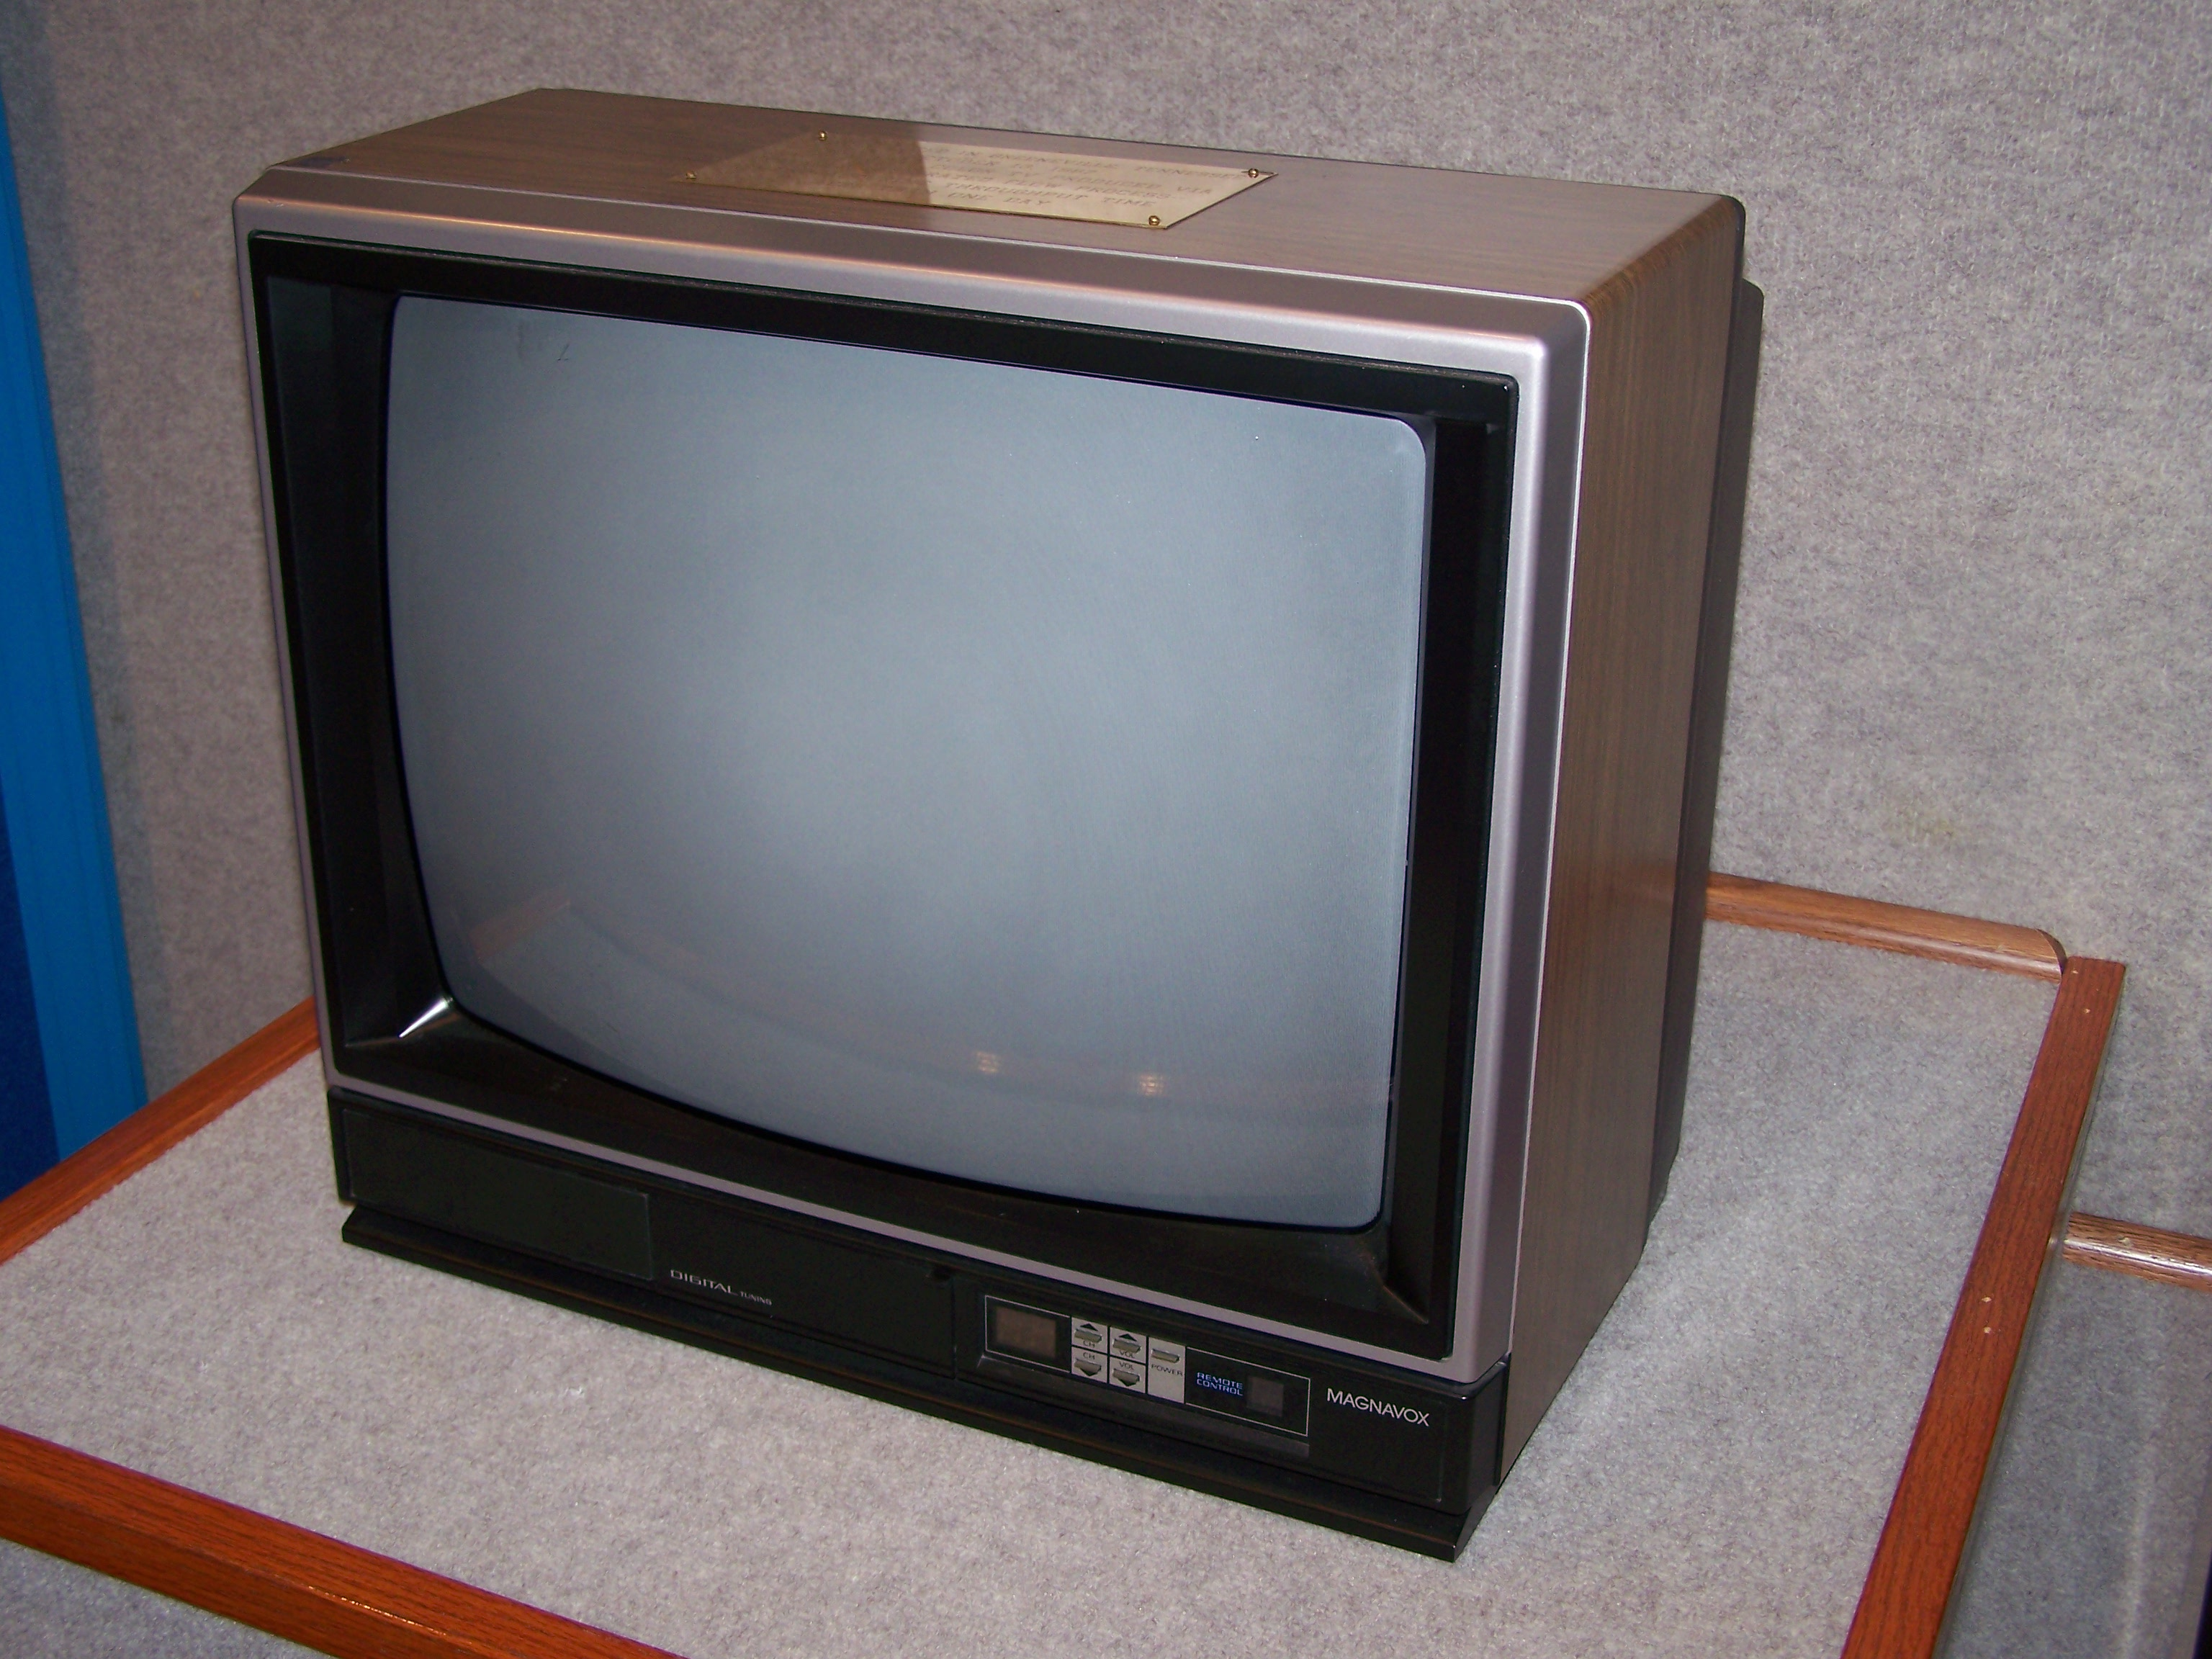 The 25 Millionth TV